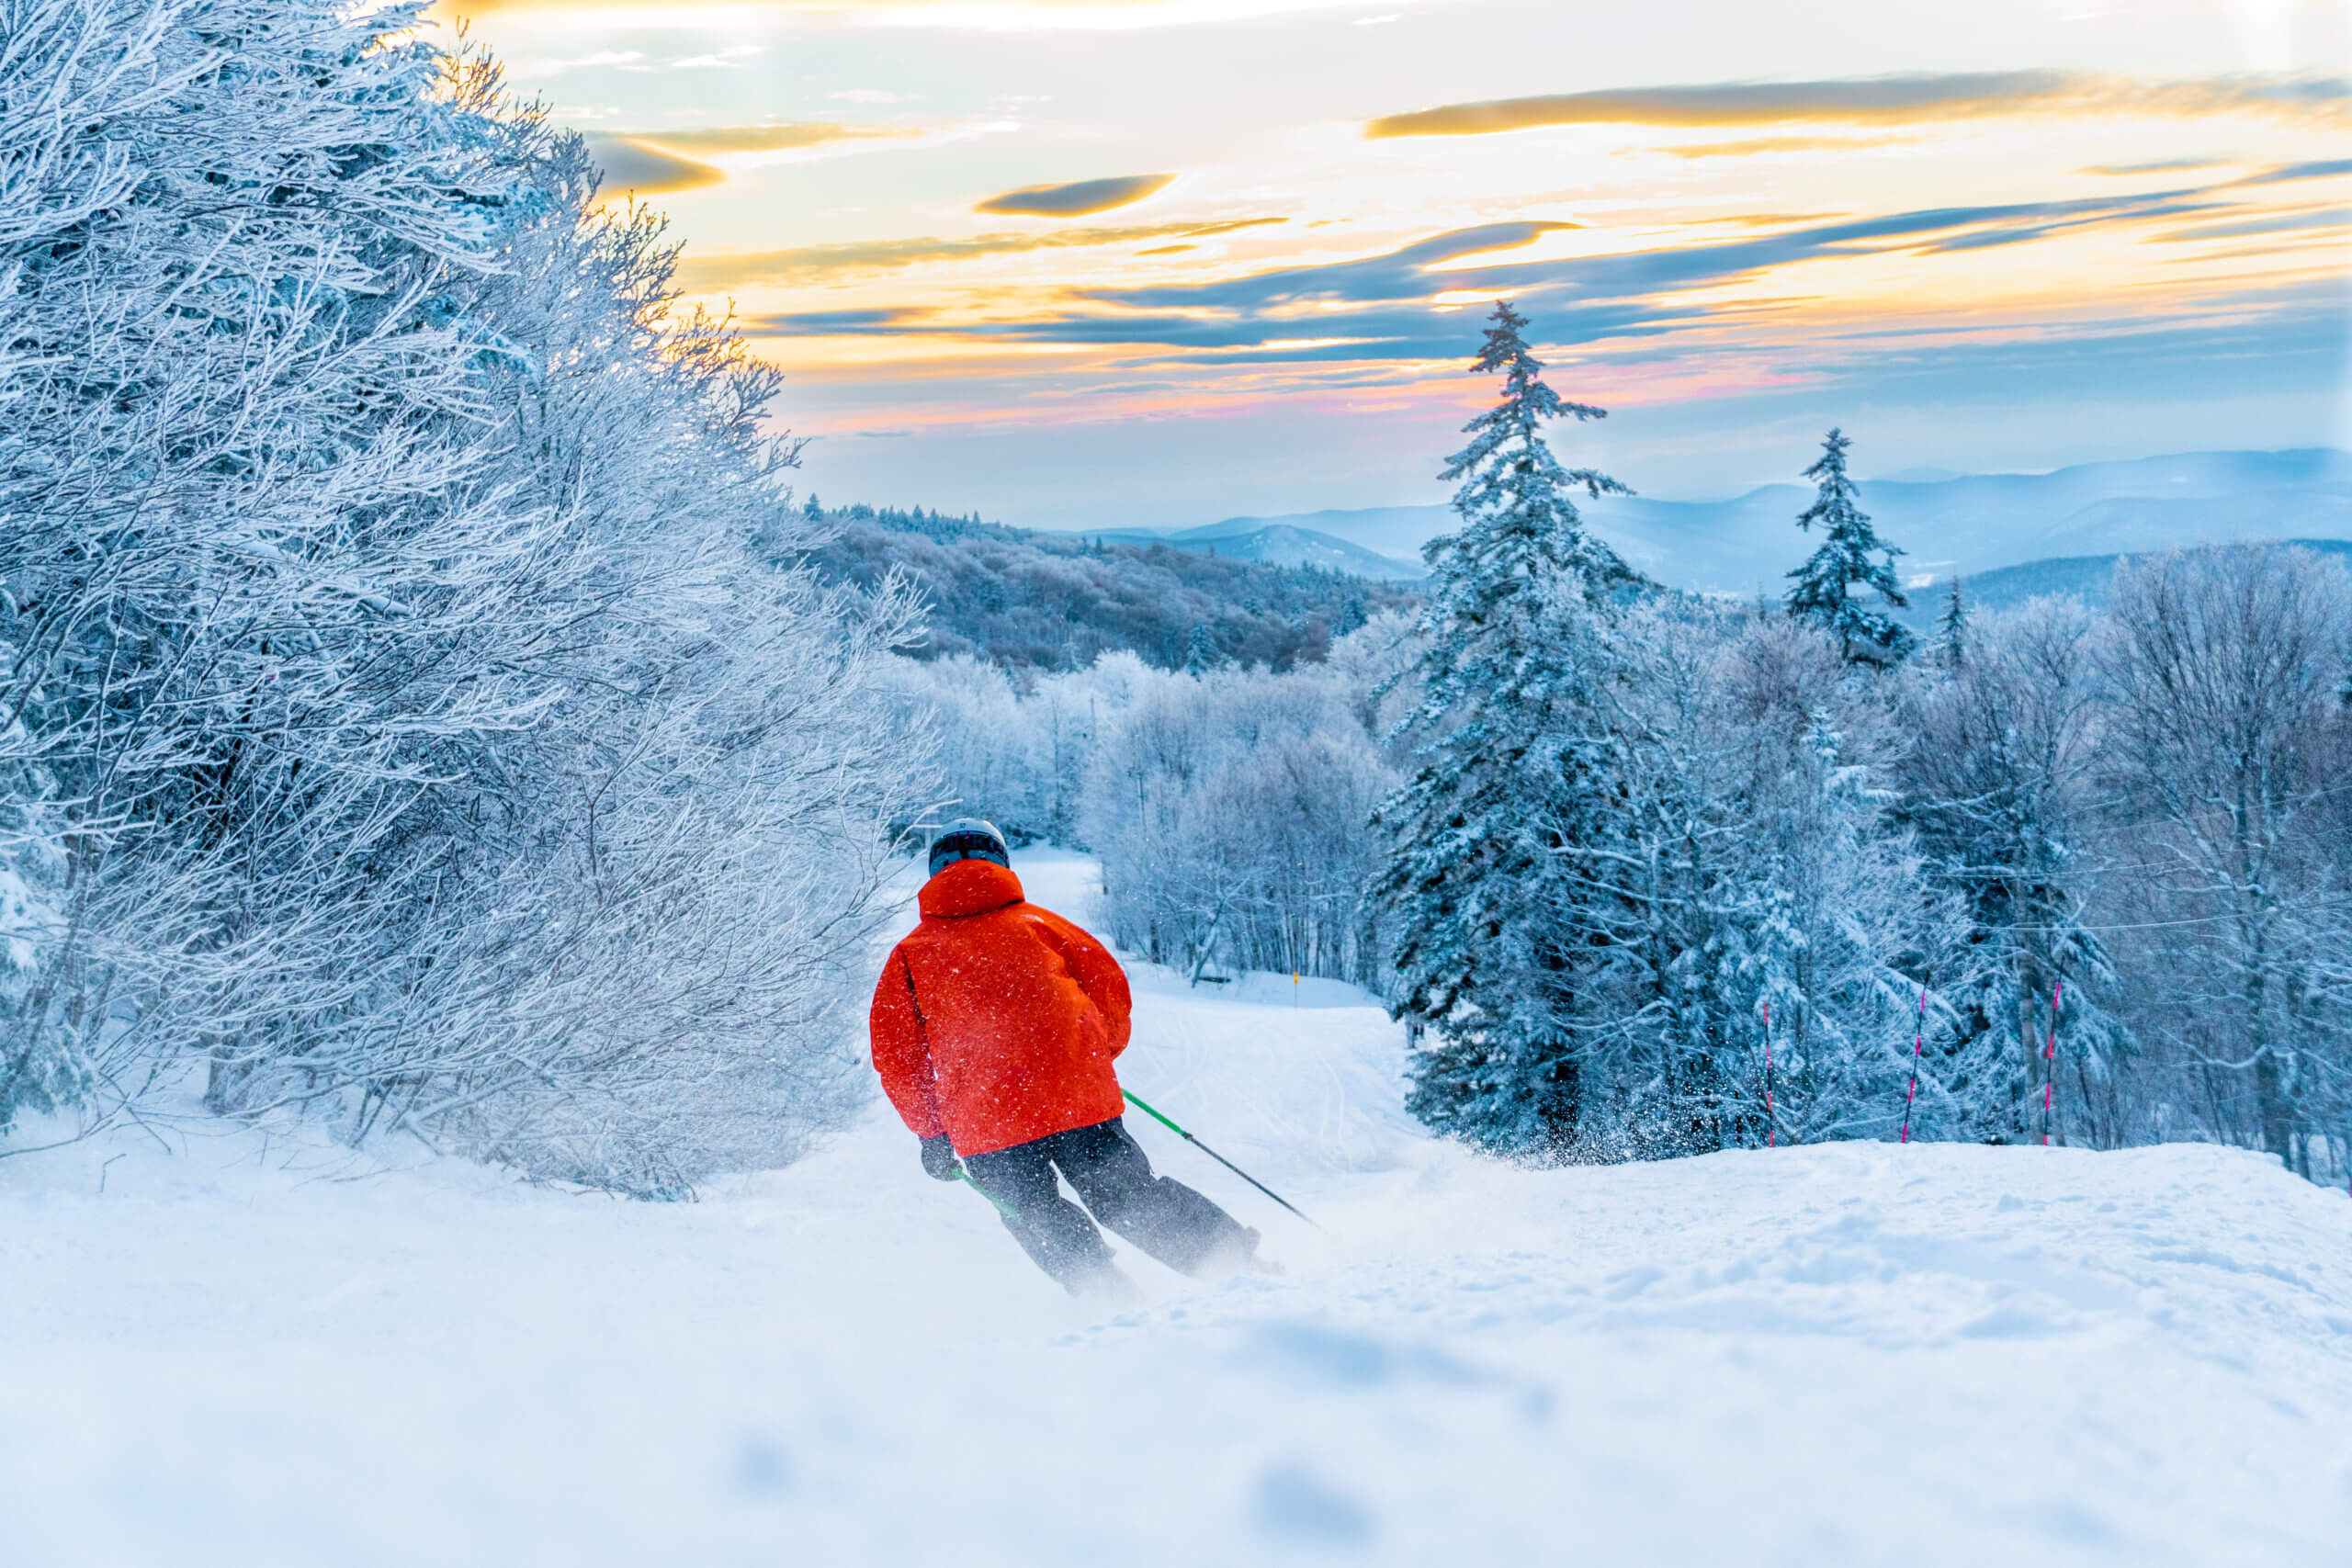 The Ride and Ski New England Card parties at Bolton Valley in Vermont